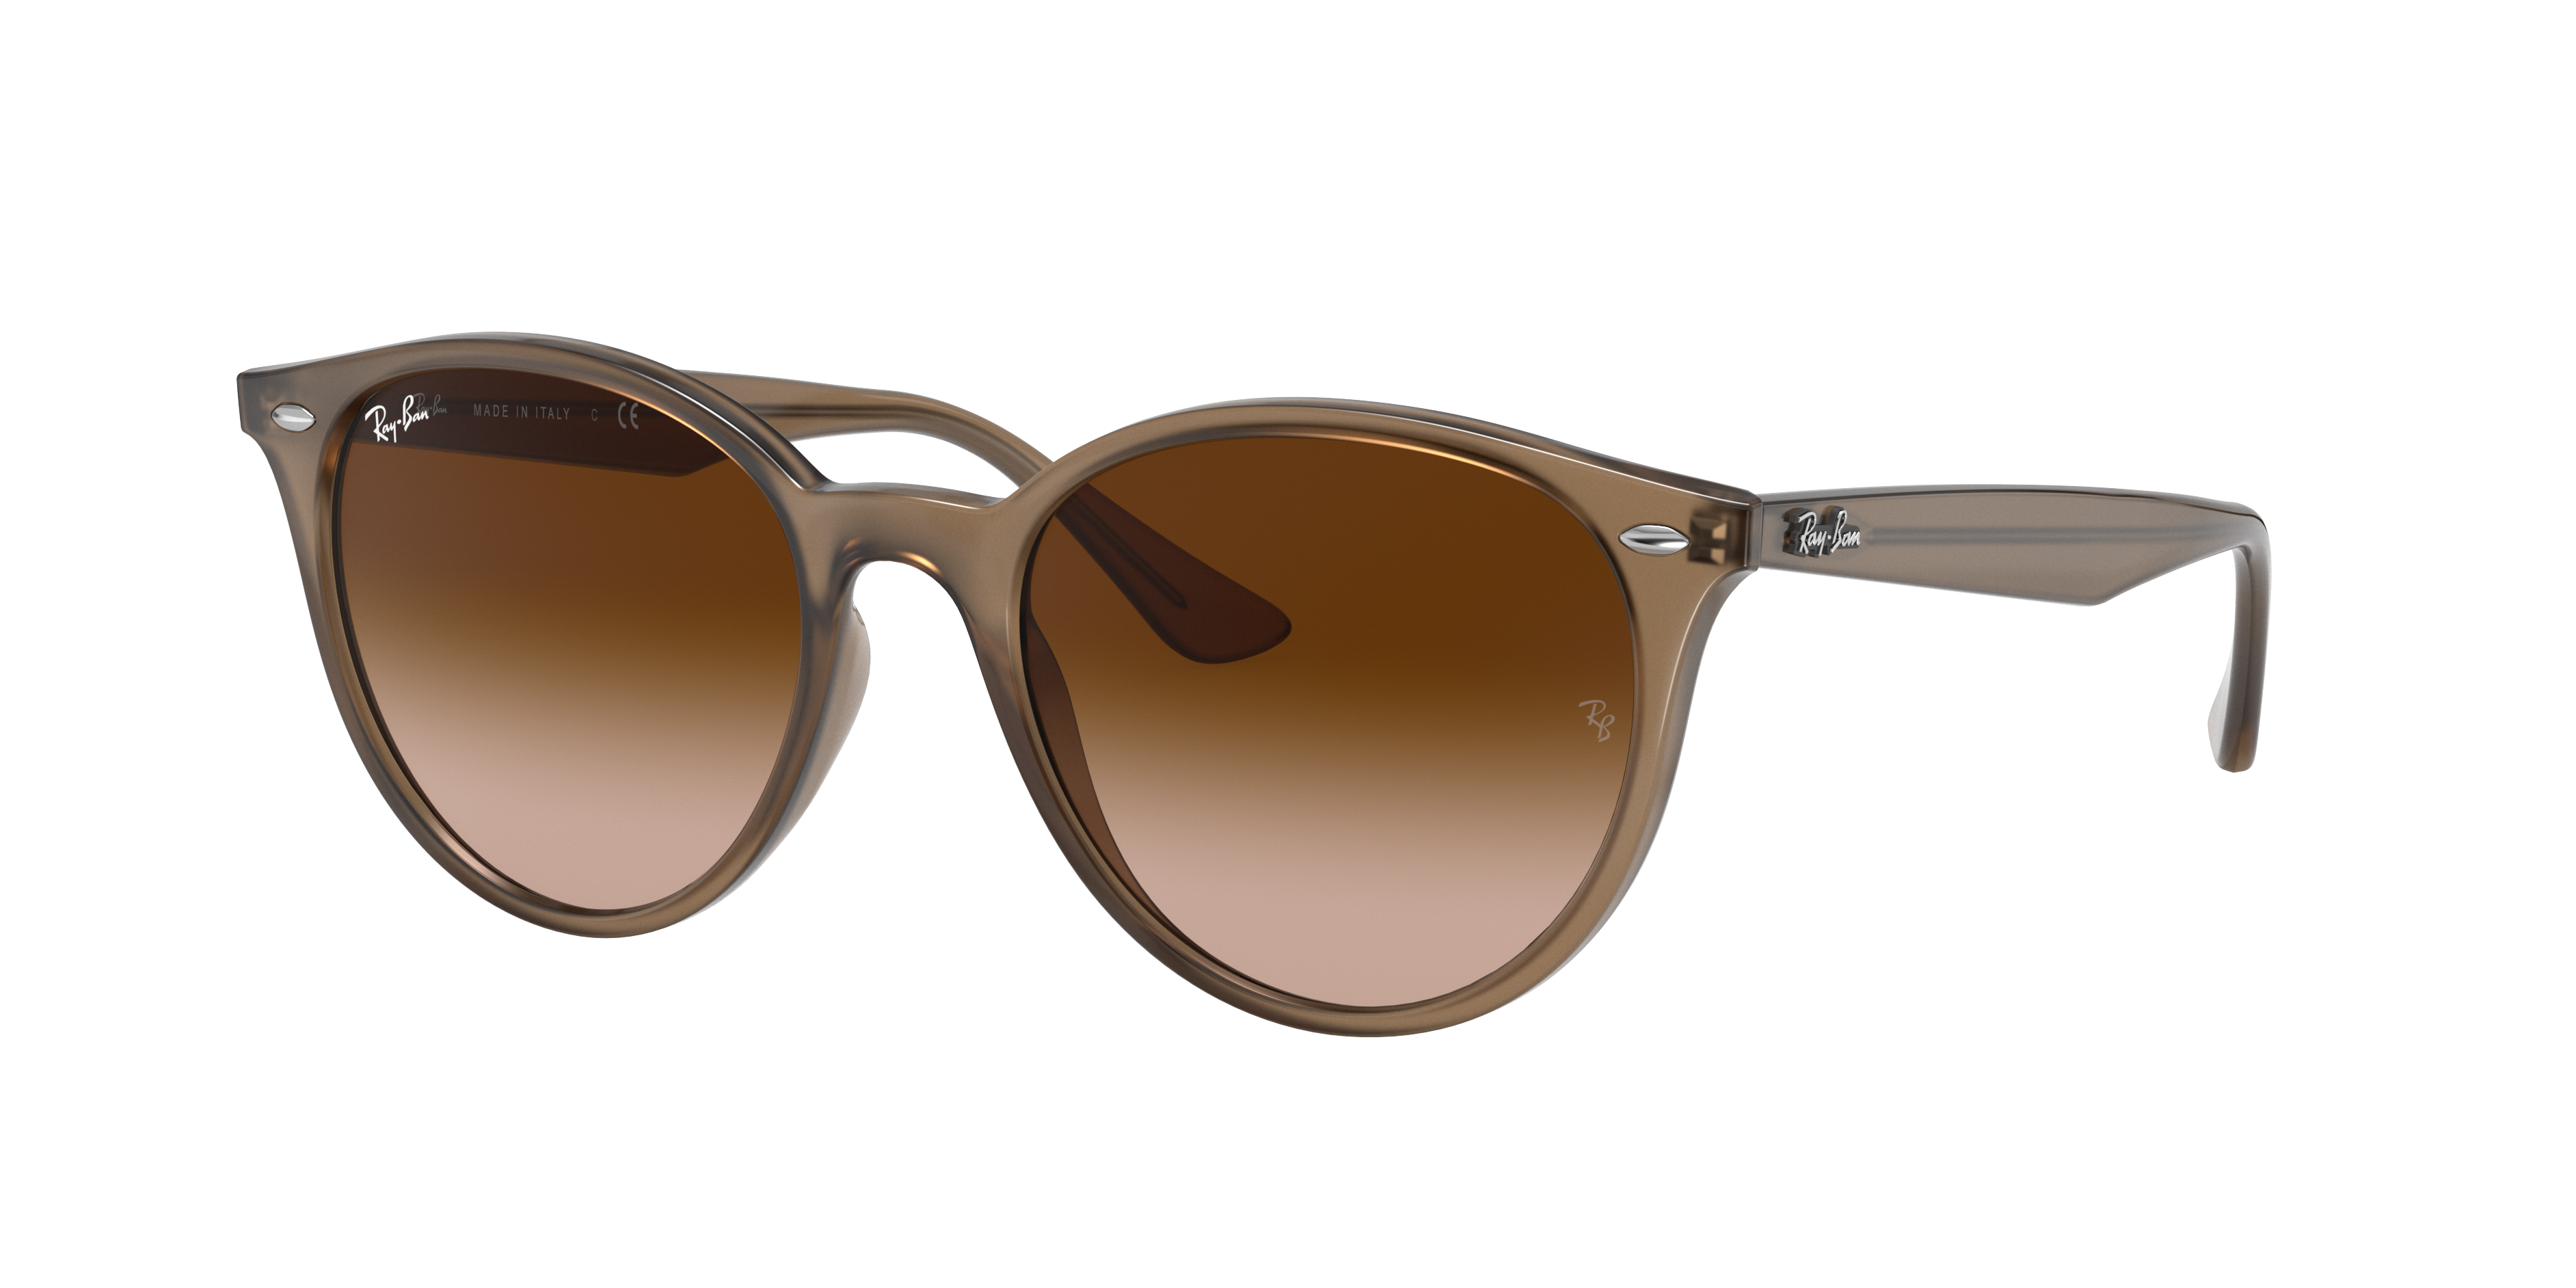 Ray-Ban Rb4305 Beige, Brown Lenses - RB4305